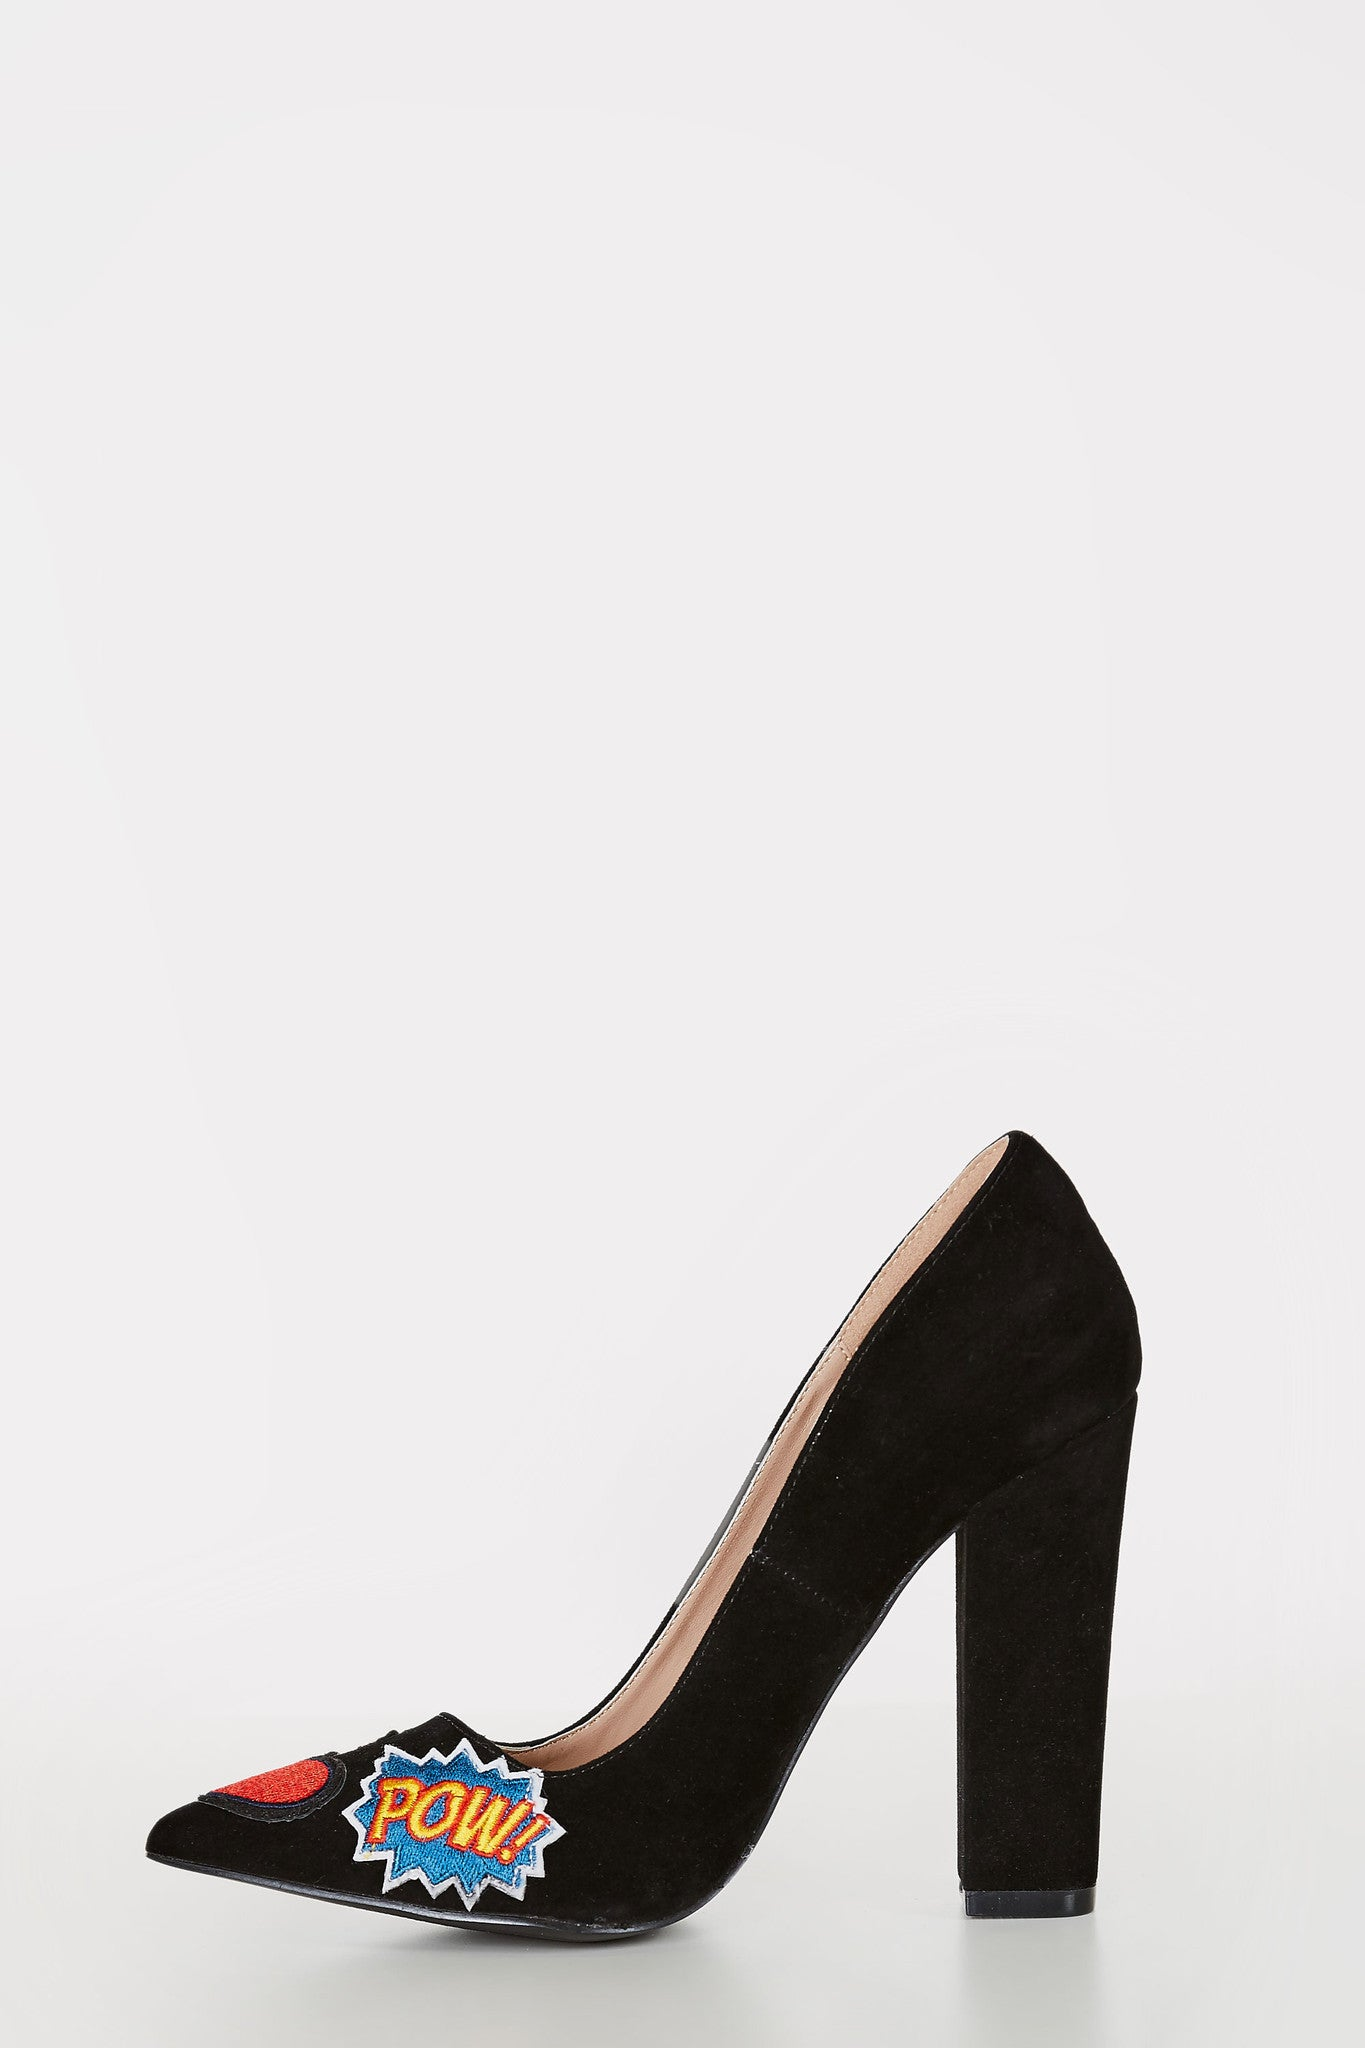 Closed toe pumps with velvet finish. Patched throughout with block heels.